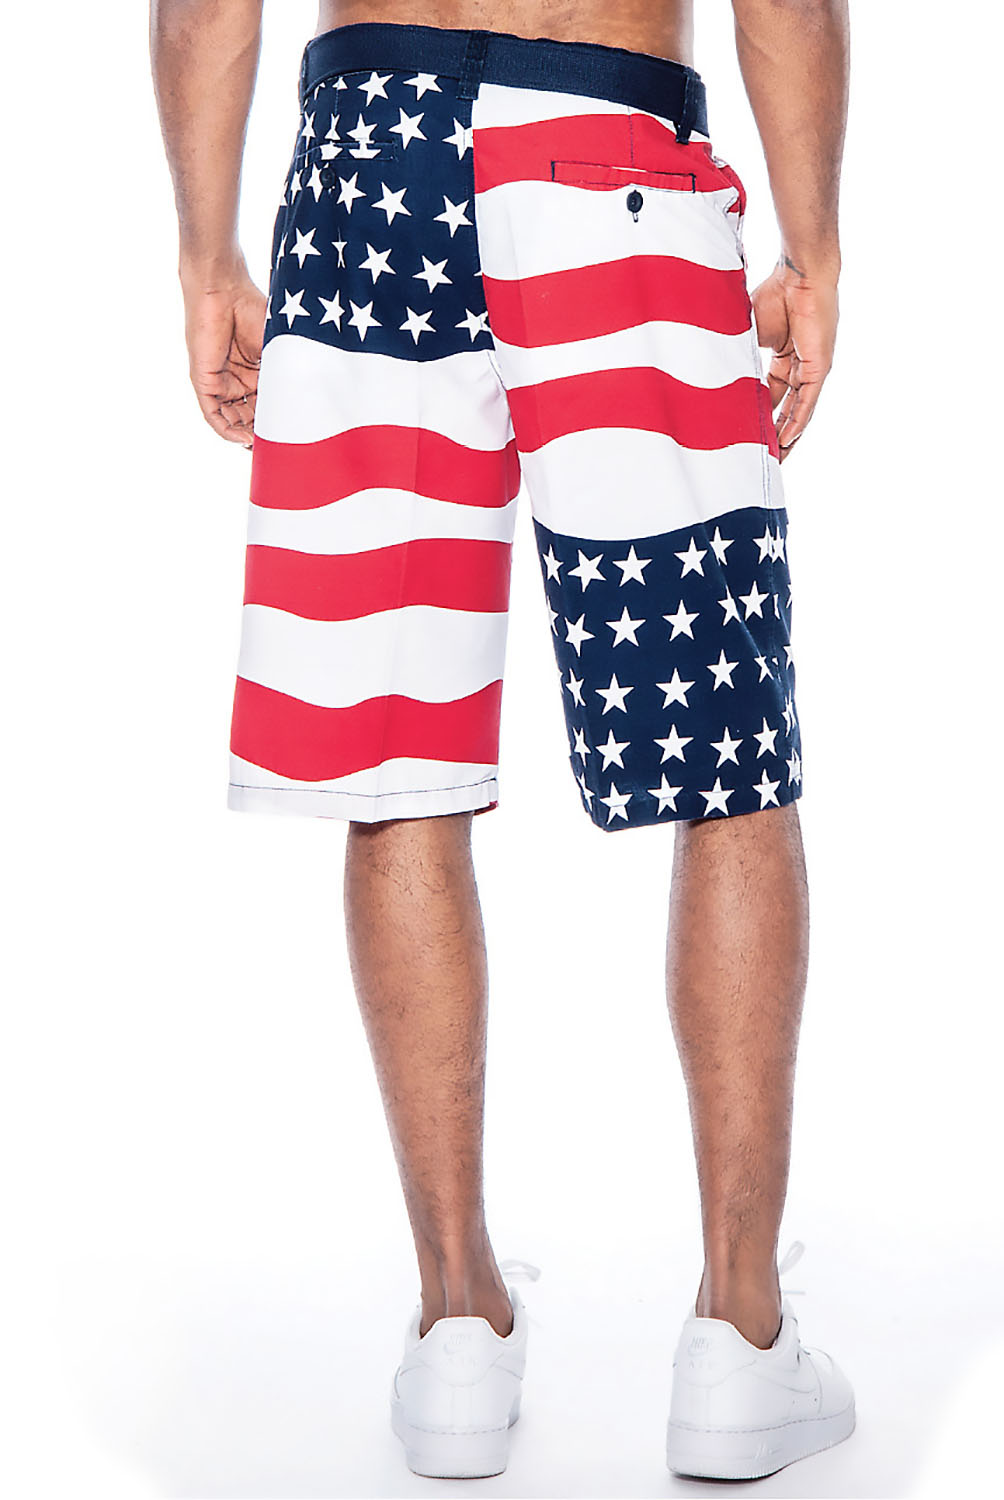 American Flag Print Mid Length Short £ £ MAN Signature Velour Stripe Mid Length Shorts £ £ Tropical Print Mid Length Shorts £ £ Chino shorts are a smart choice for a night out, denim cargo shorts are ideal for a laid back look and our collection of swim shorts will keep you looking cool by the pool.